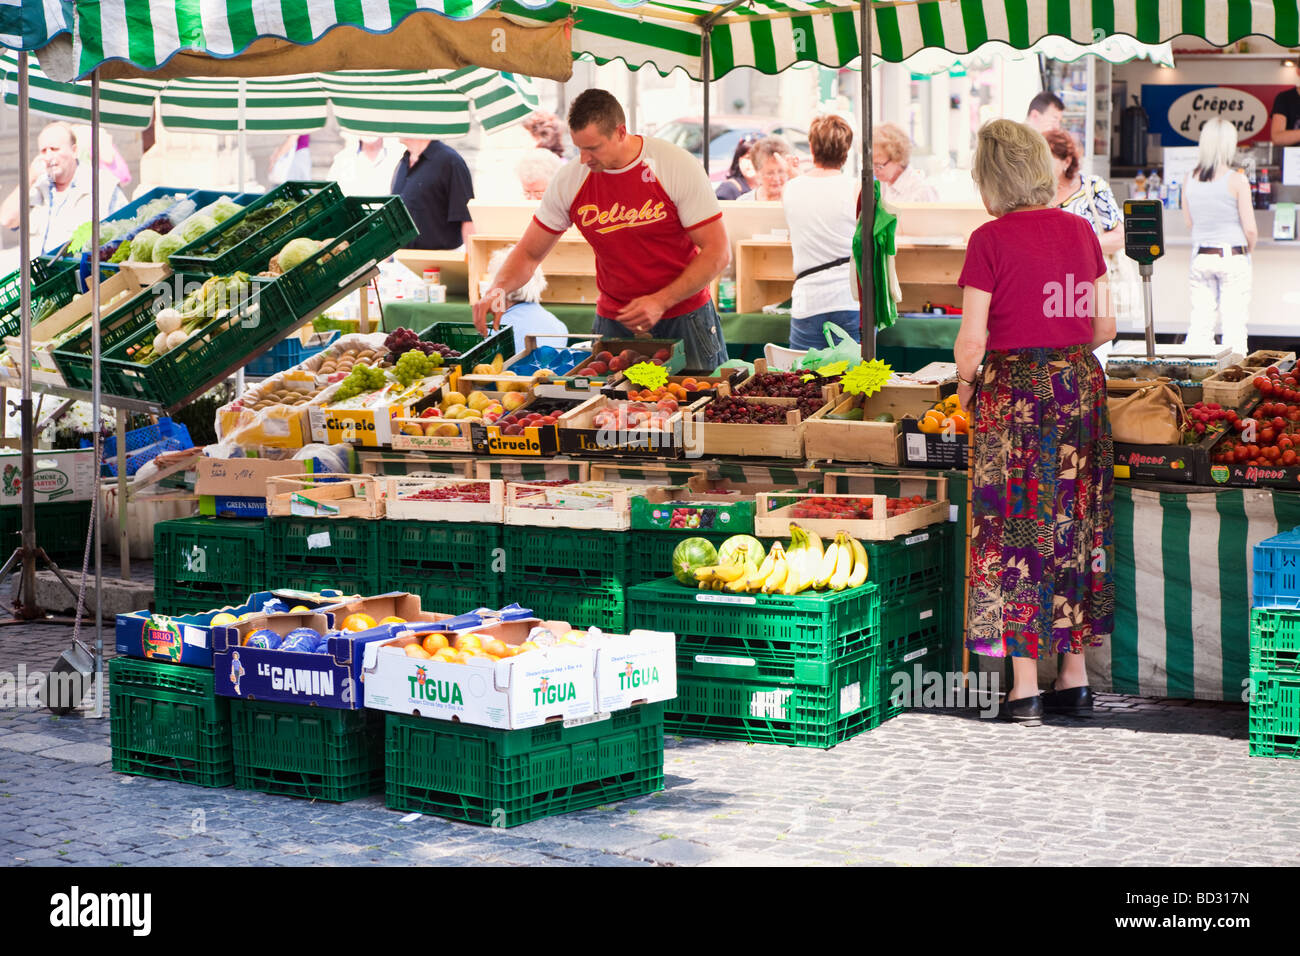 Selling Food At A Market Stall